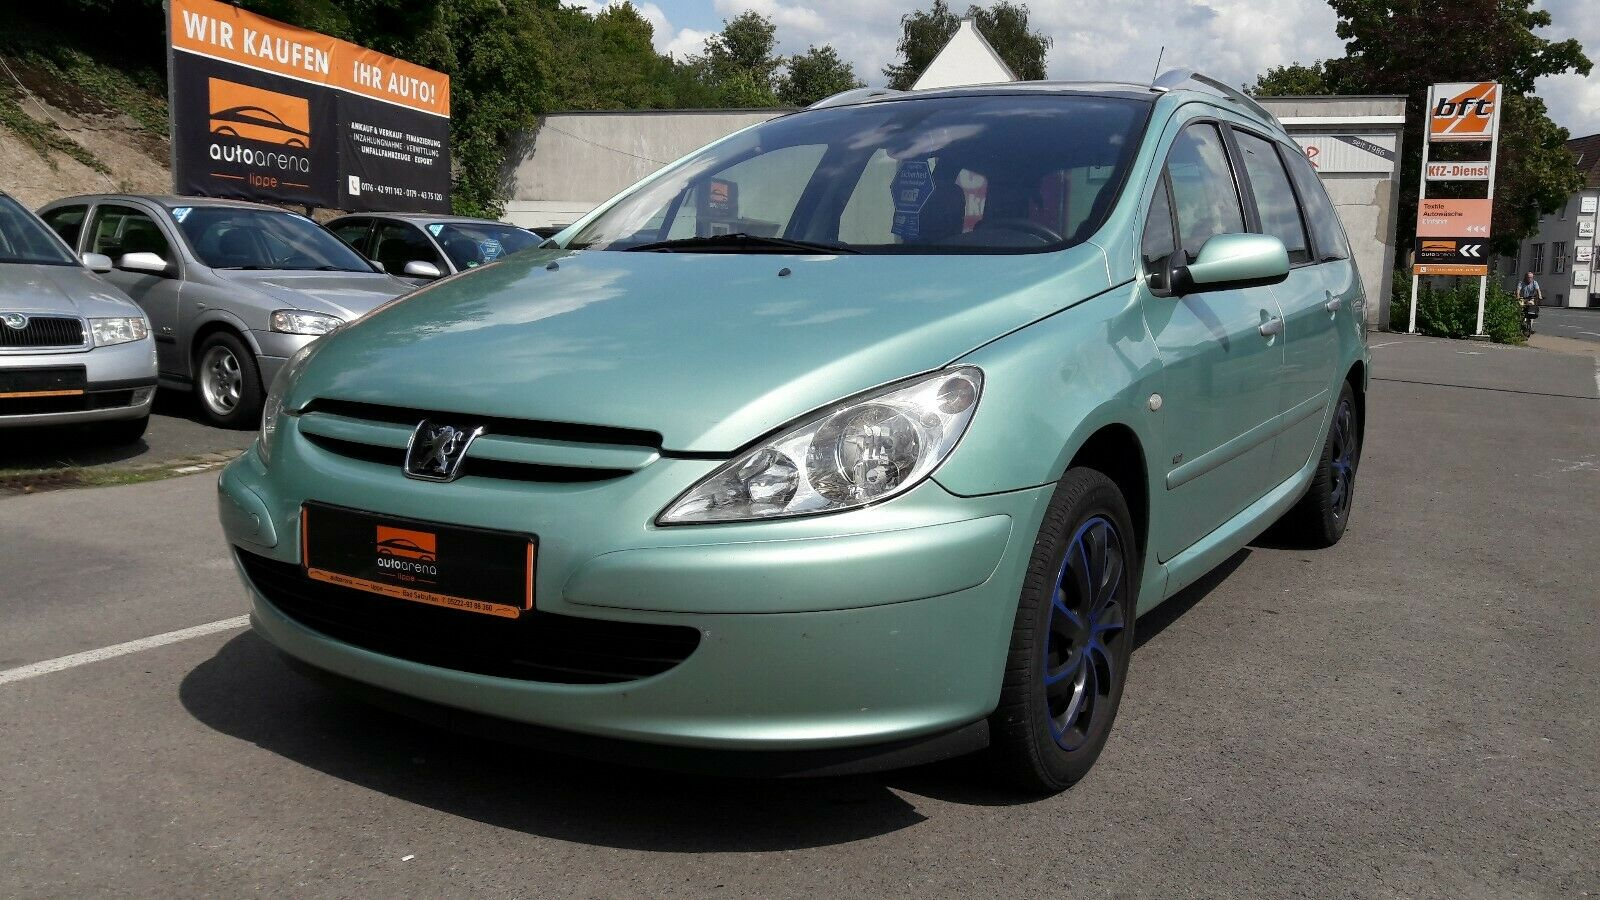 PEUGEOT 307 Break / SW SW /2.0 / Top Zustand